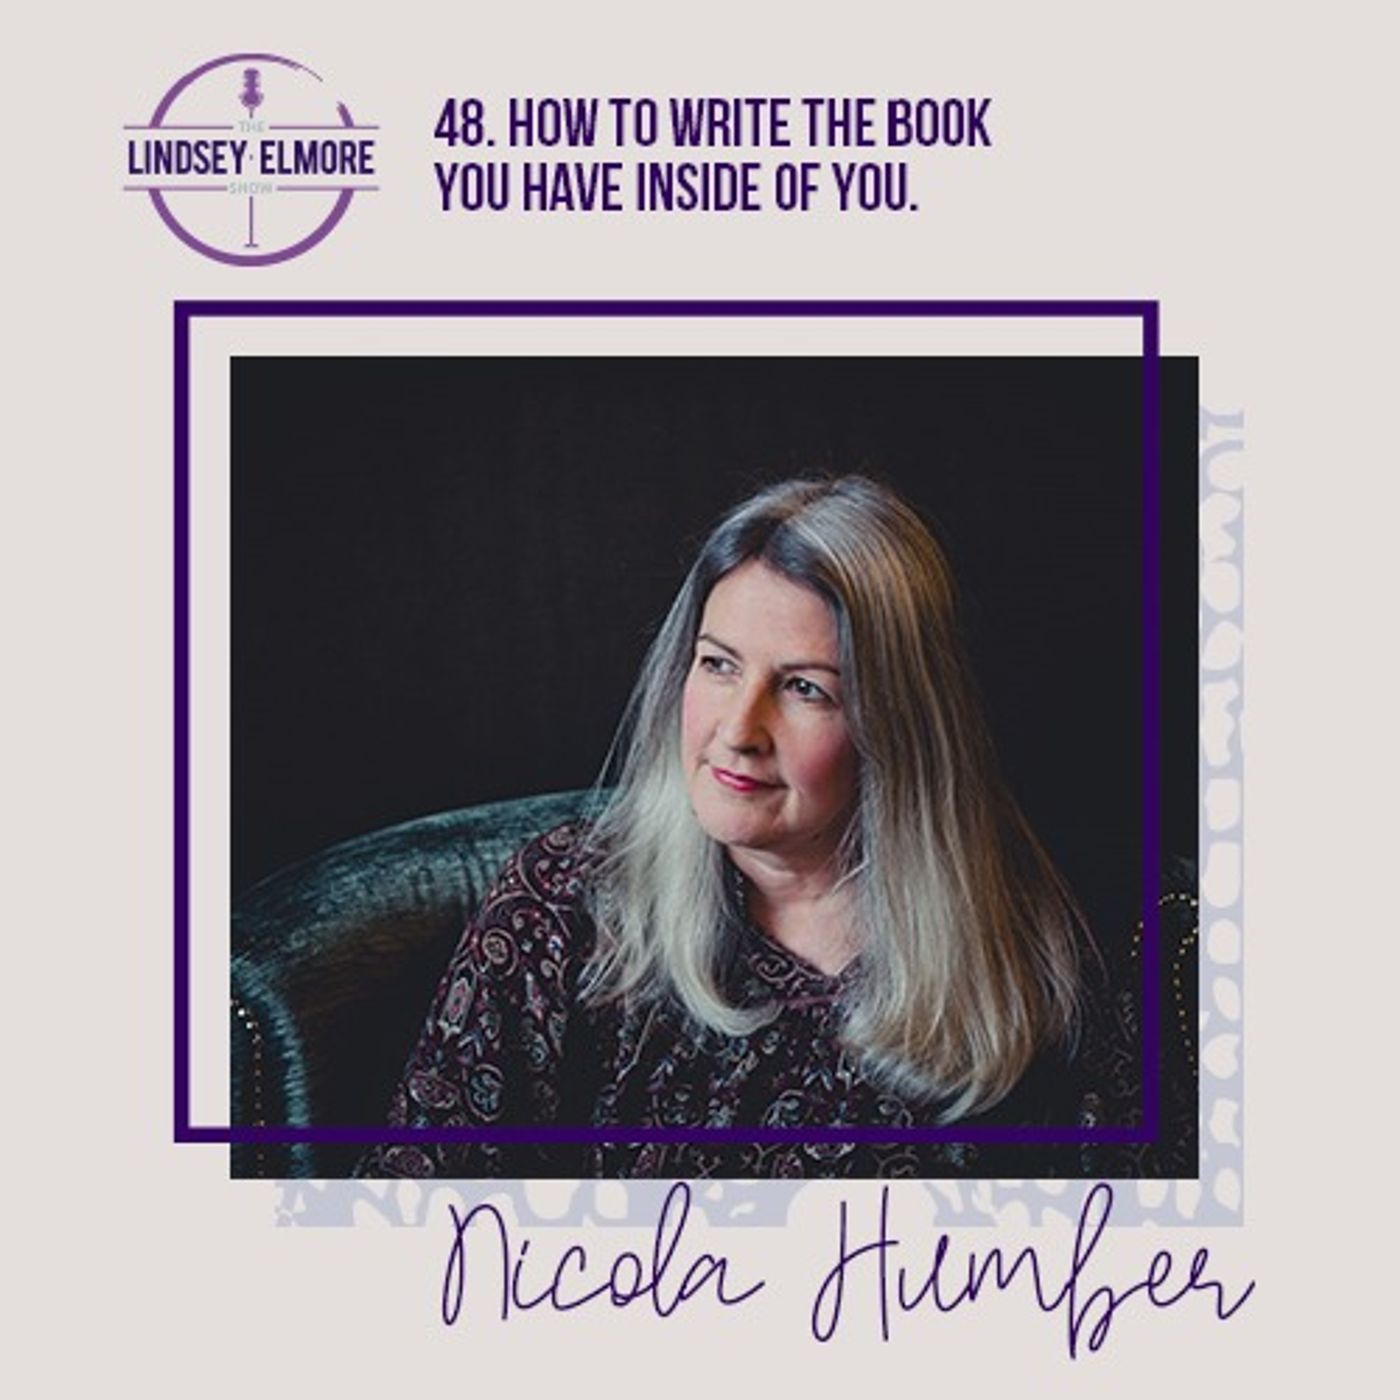 How to write the book you have inside of you. An interview with Nicola Humber.